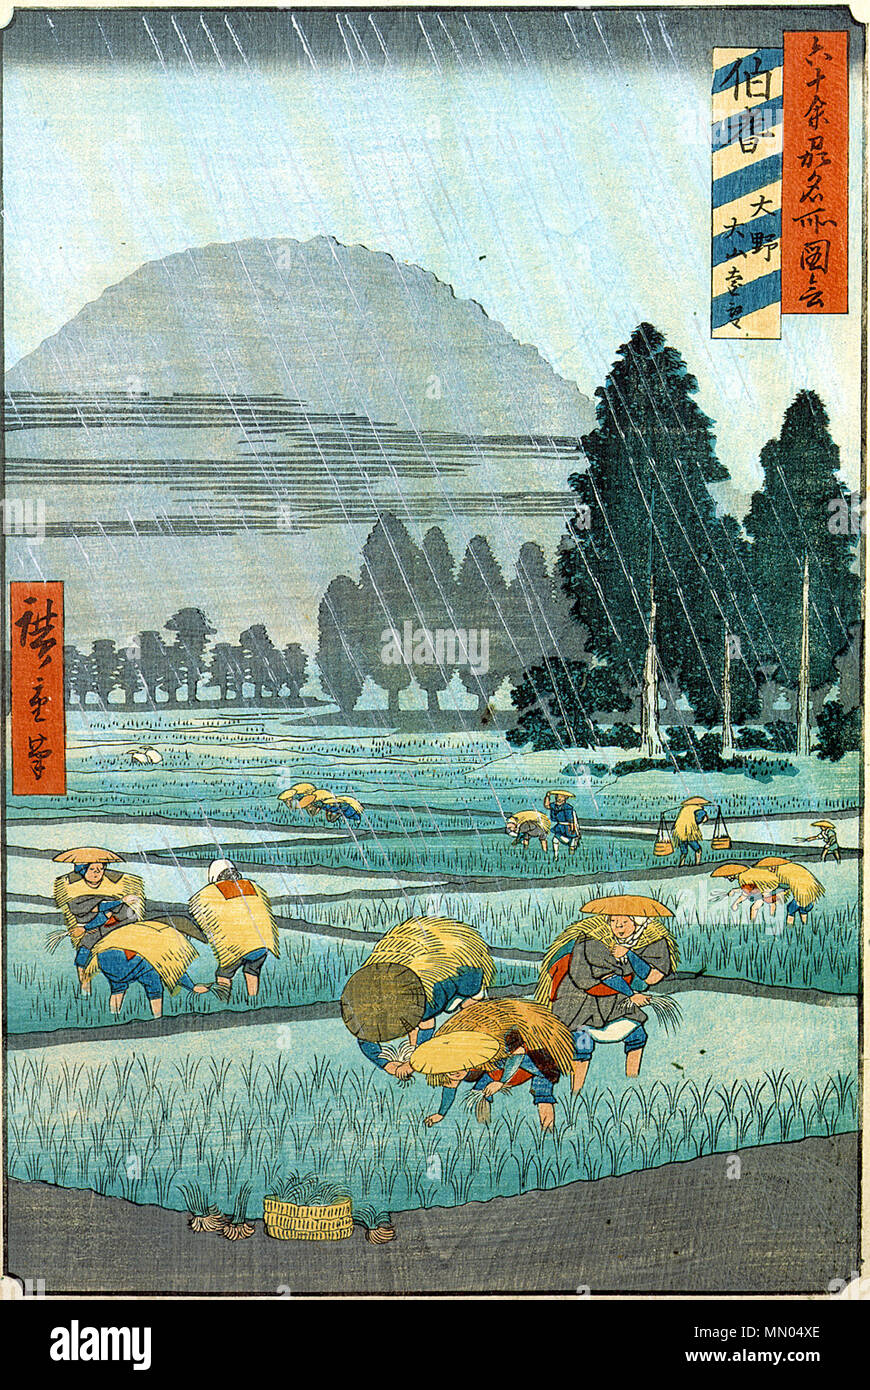 . English: Accession Number: 1954.42.a Display Artist: Utagawa Hiroshige Display Title: 'Hoki Province, Ono, Distant View of Mount Daisen' Translation(s): '(Hoki, Ono, Daisen enbo)Ono oyama embo' Series Title: Famous Views of the Sixty-odd Provinces Suite Name: Rokujuyoshu meisho zue Creation Date: 1853 Medium: Woodblock Height: 13 1/2 in. Width: 9 in. Display Dimensions: 13 1/2 in. x 9 in. (34.29 cm x 22.86 cm) Publisher: Koshimuraya Heisuke Credit Line: Gift of Mrs. Clark Cavenee Collection: The San Diego Museum of Art  . 25 May 2011, 11:49:04. English: thesandiegomuseumofartcollection Hoki  Stock Photo